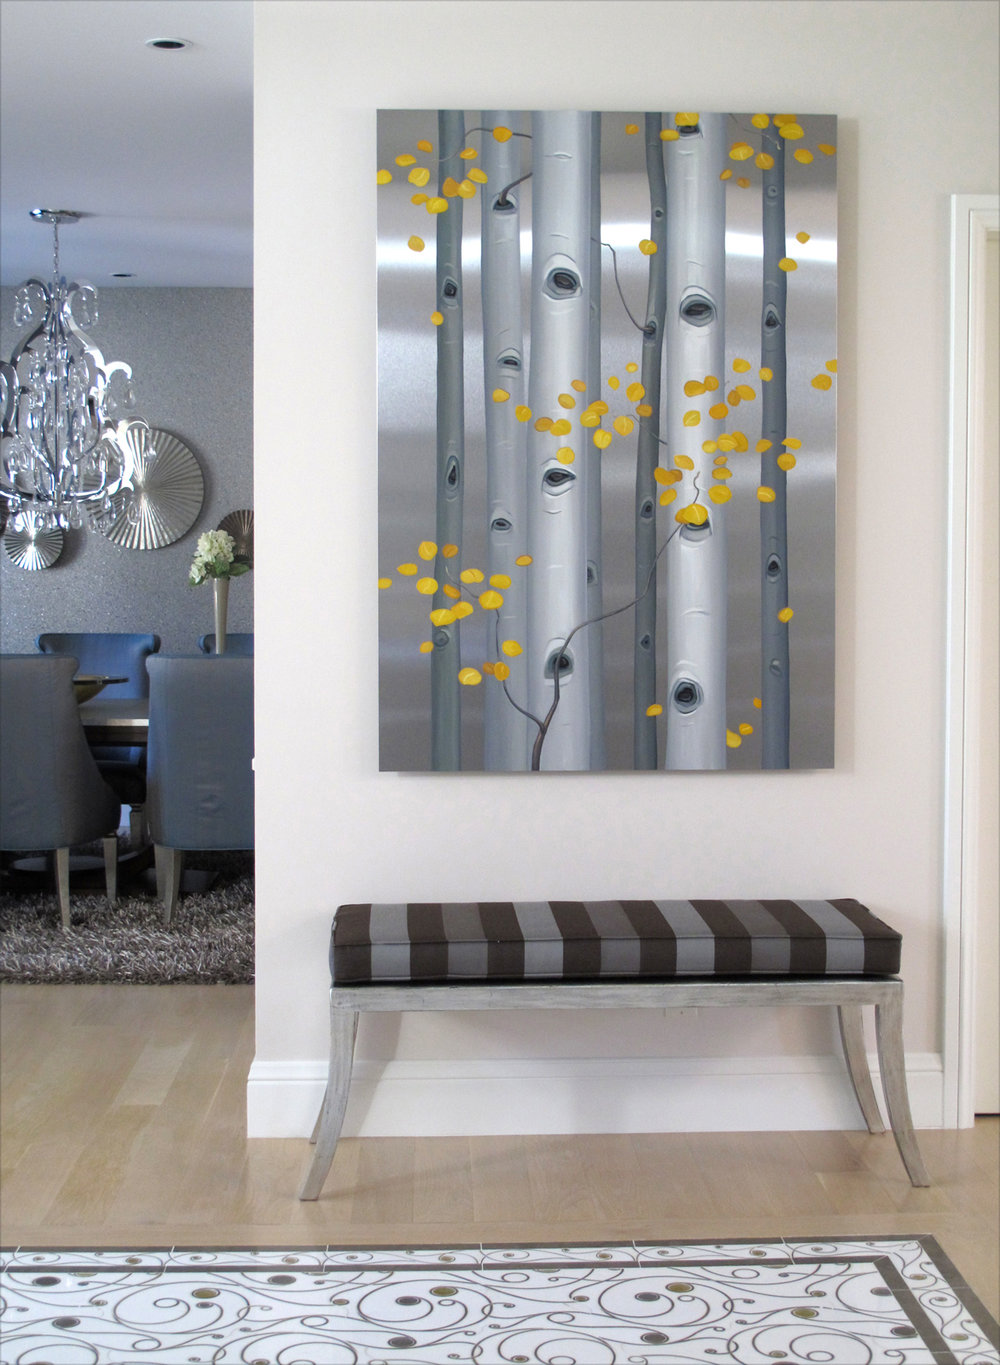 Aspen commission installed in Denver home (private collection)